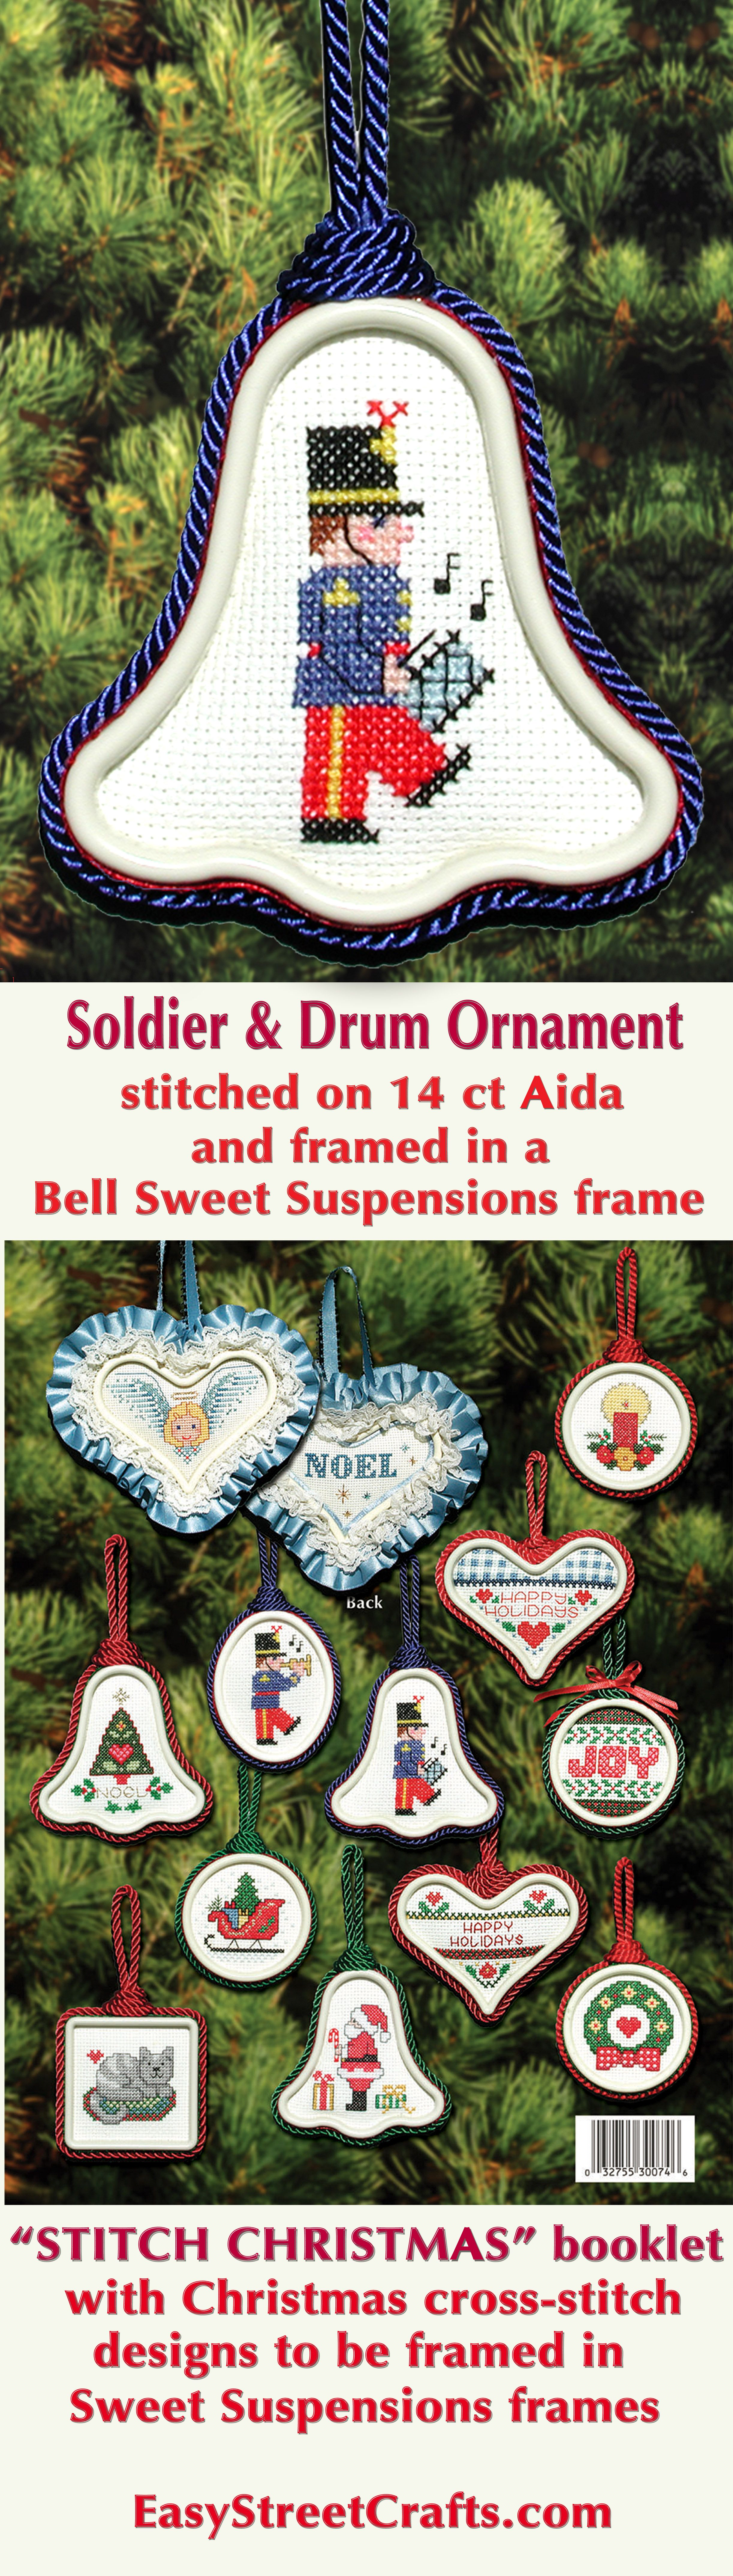 24 Easy to Stitch Christmas Cross-Stitch Designs to frame in Sweet ...